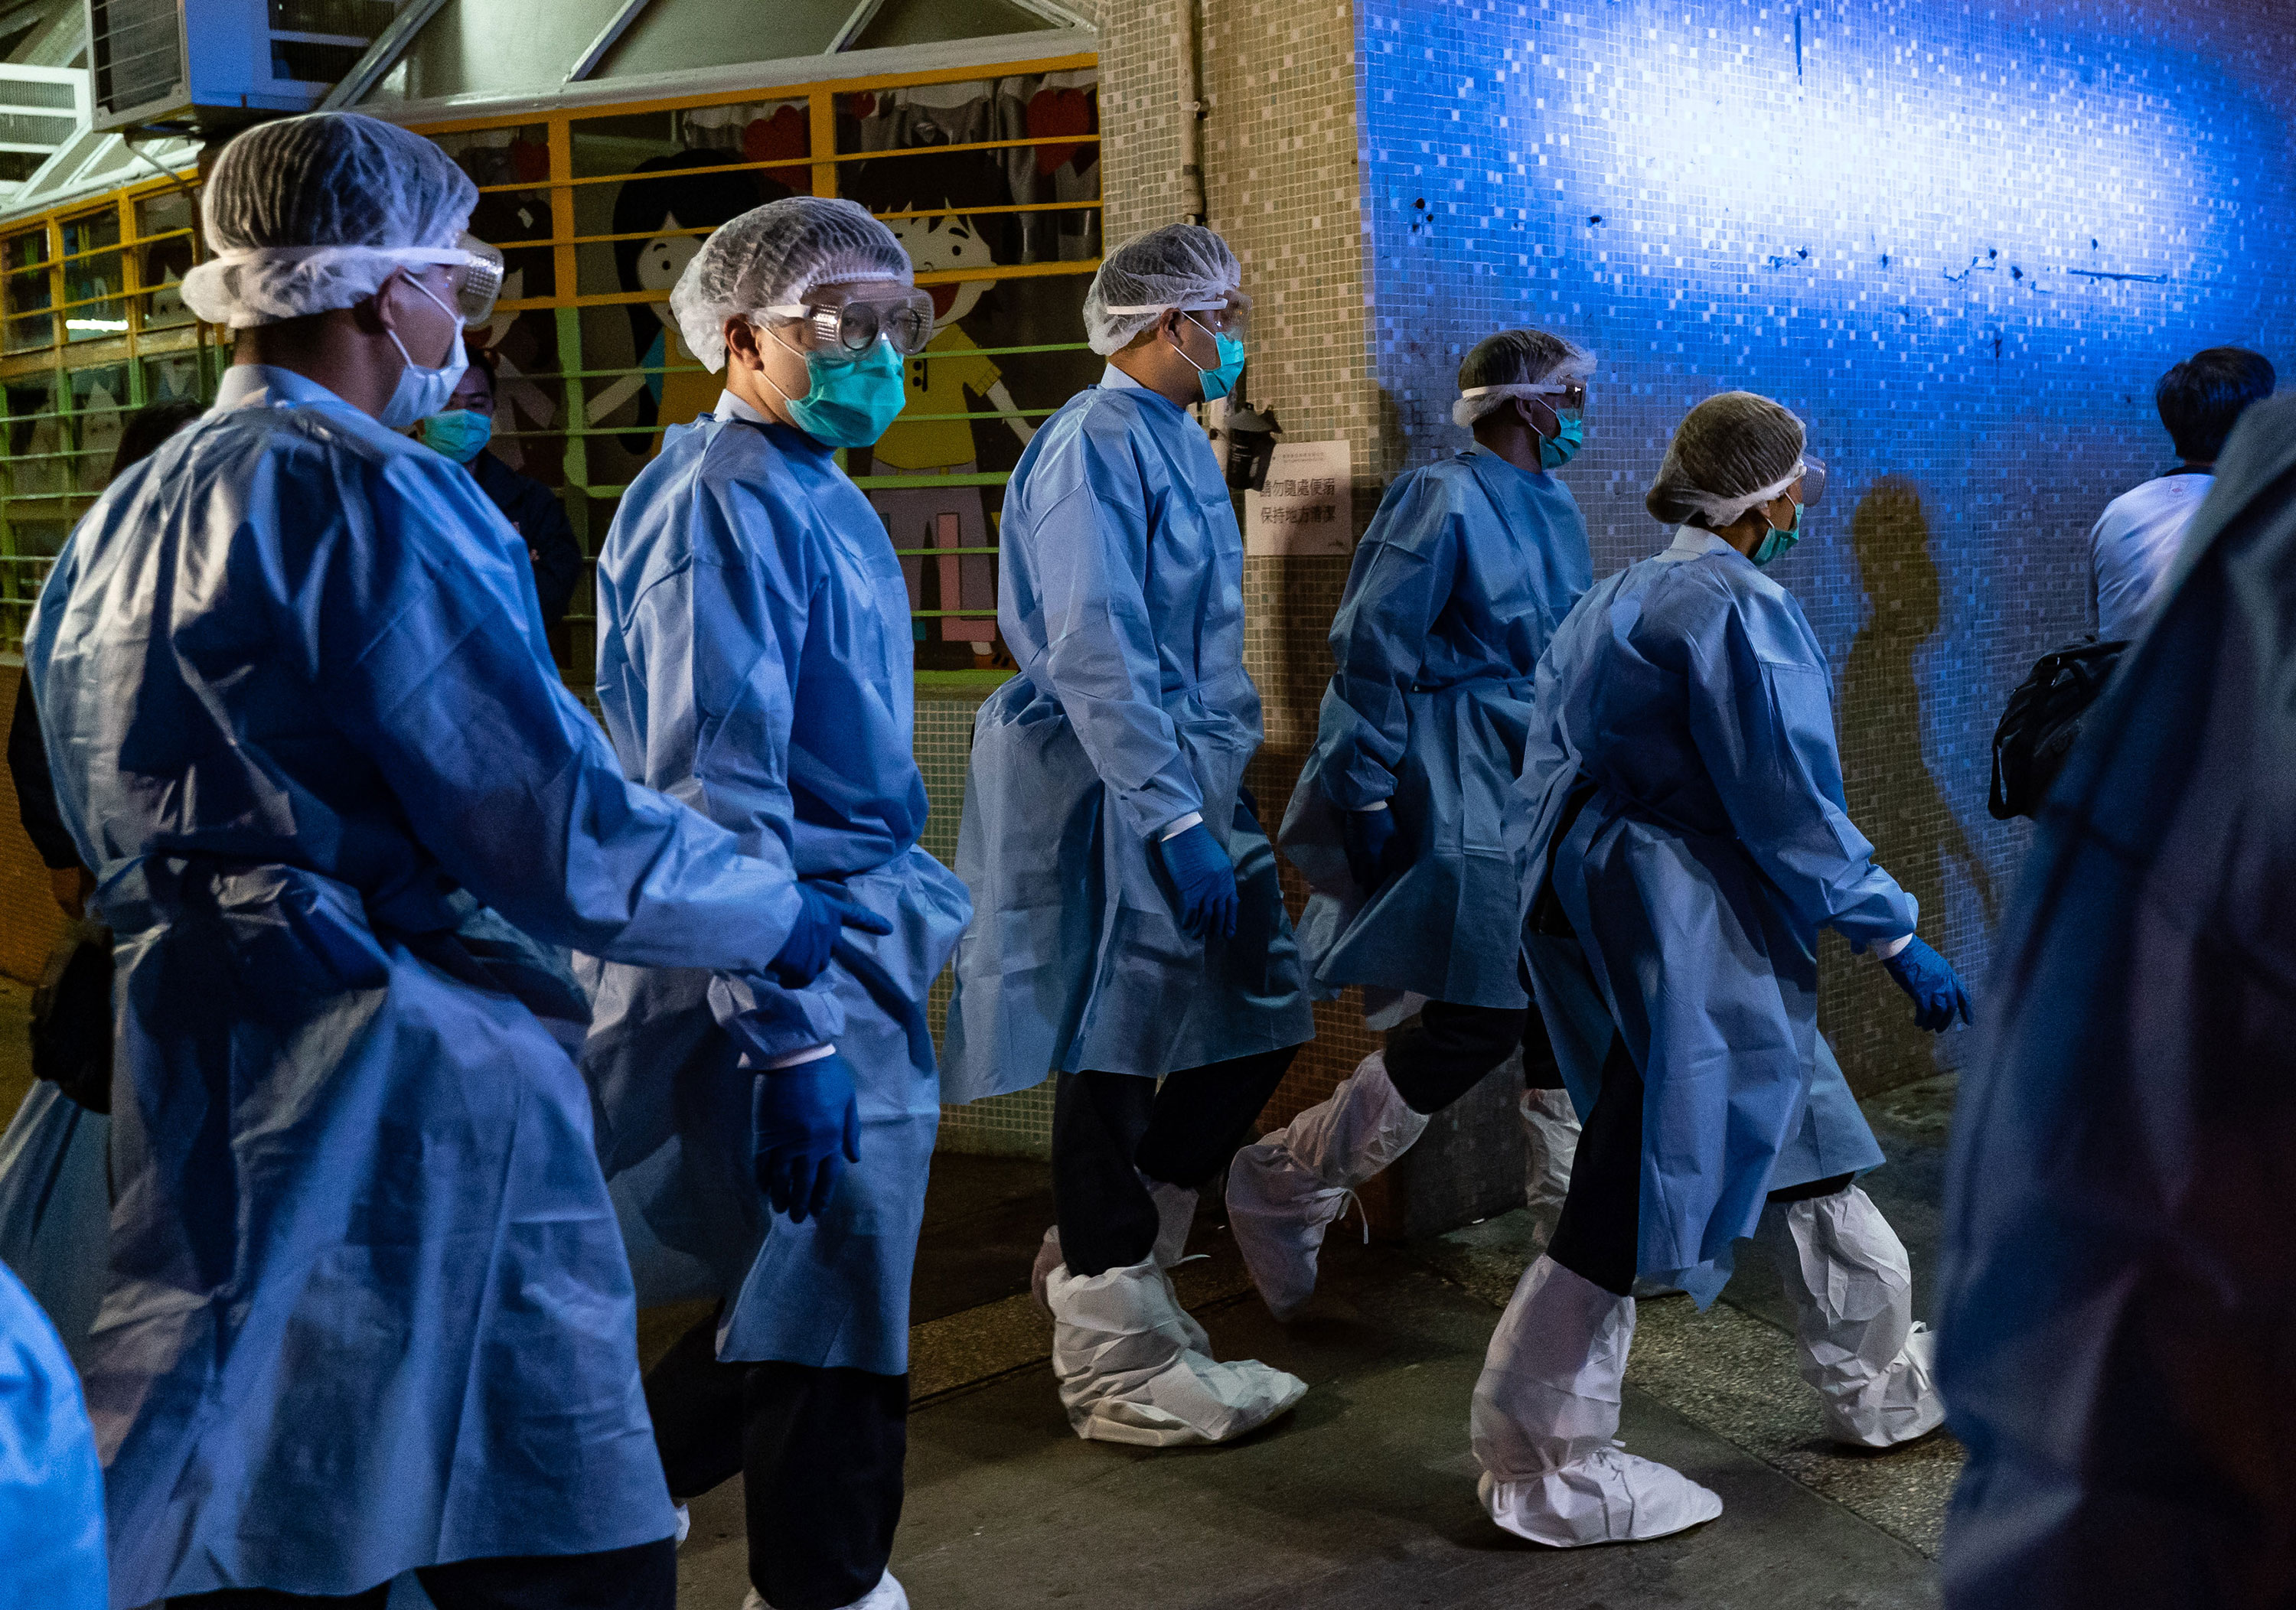 Police arrive at a public housing building as residents are evacuated from their home to a quarantine center after multiple infections of the novel coronavirus at Fu Heng Estate on March 14 in Hong Kong.